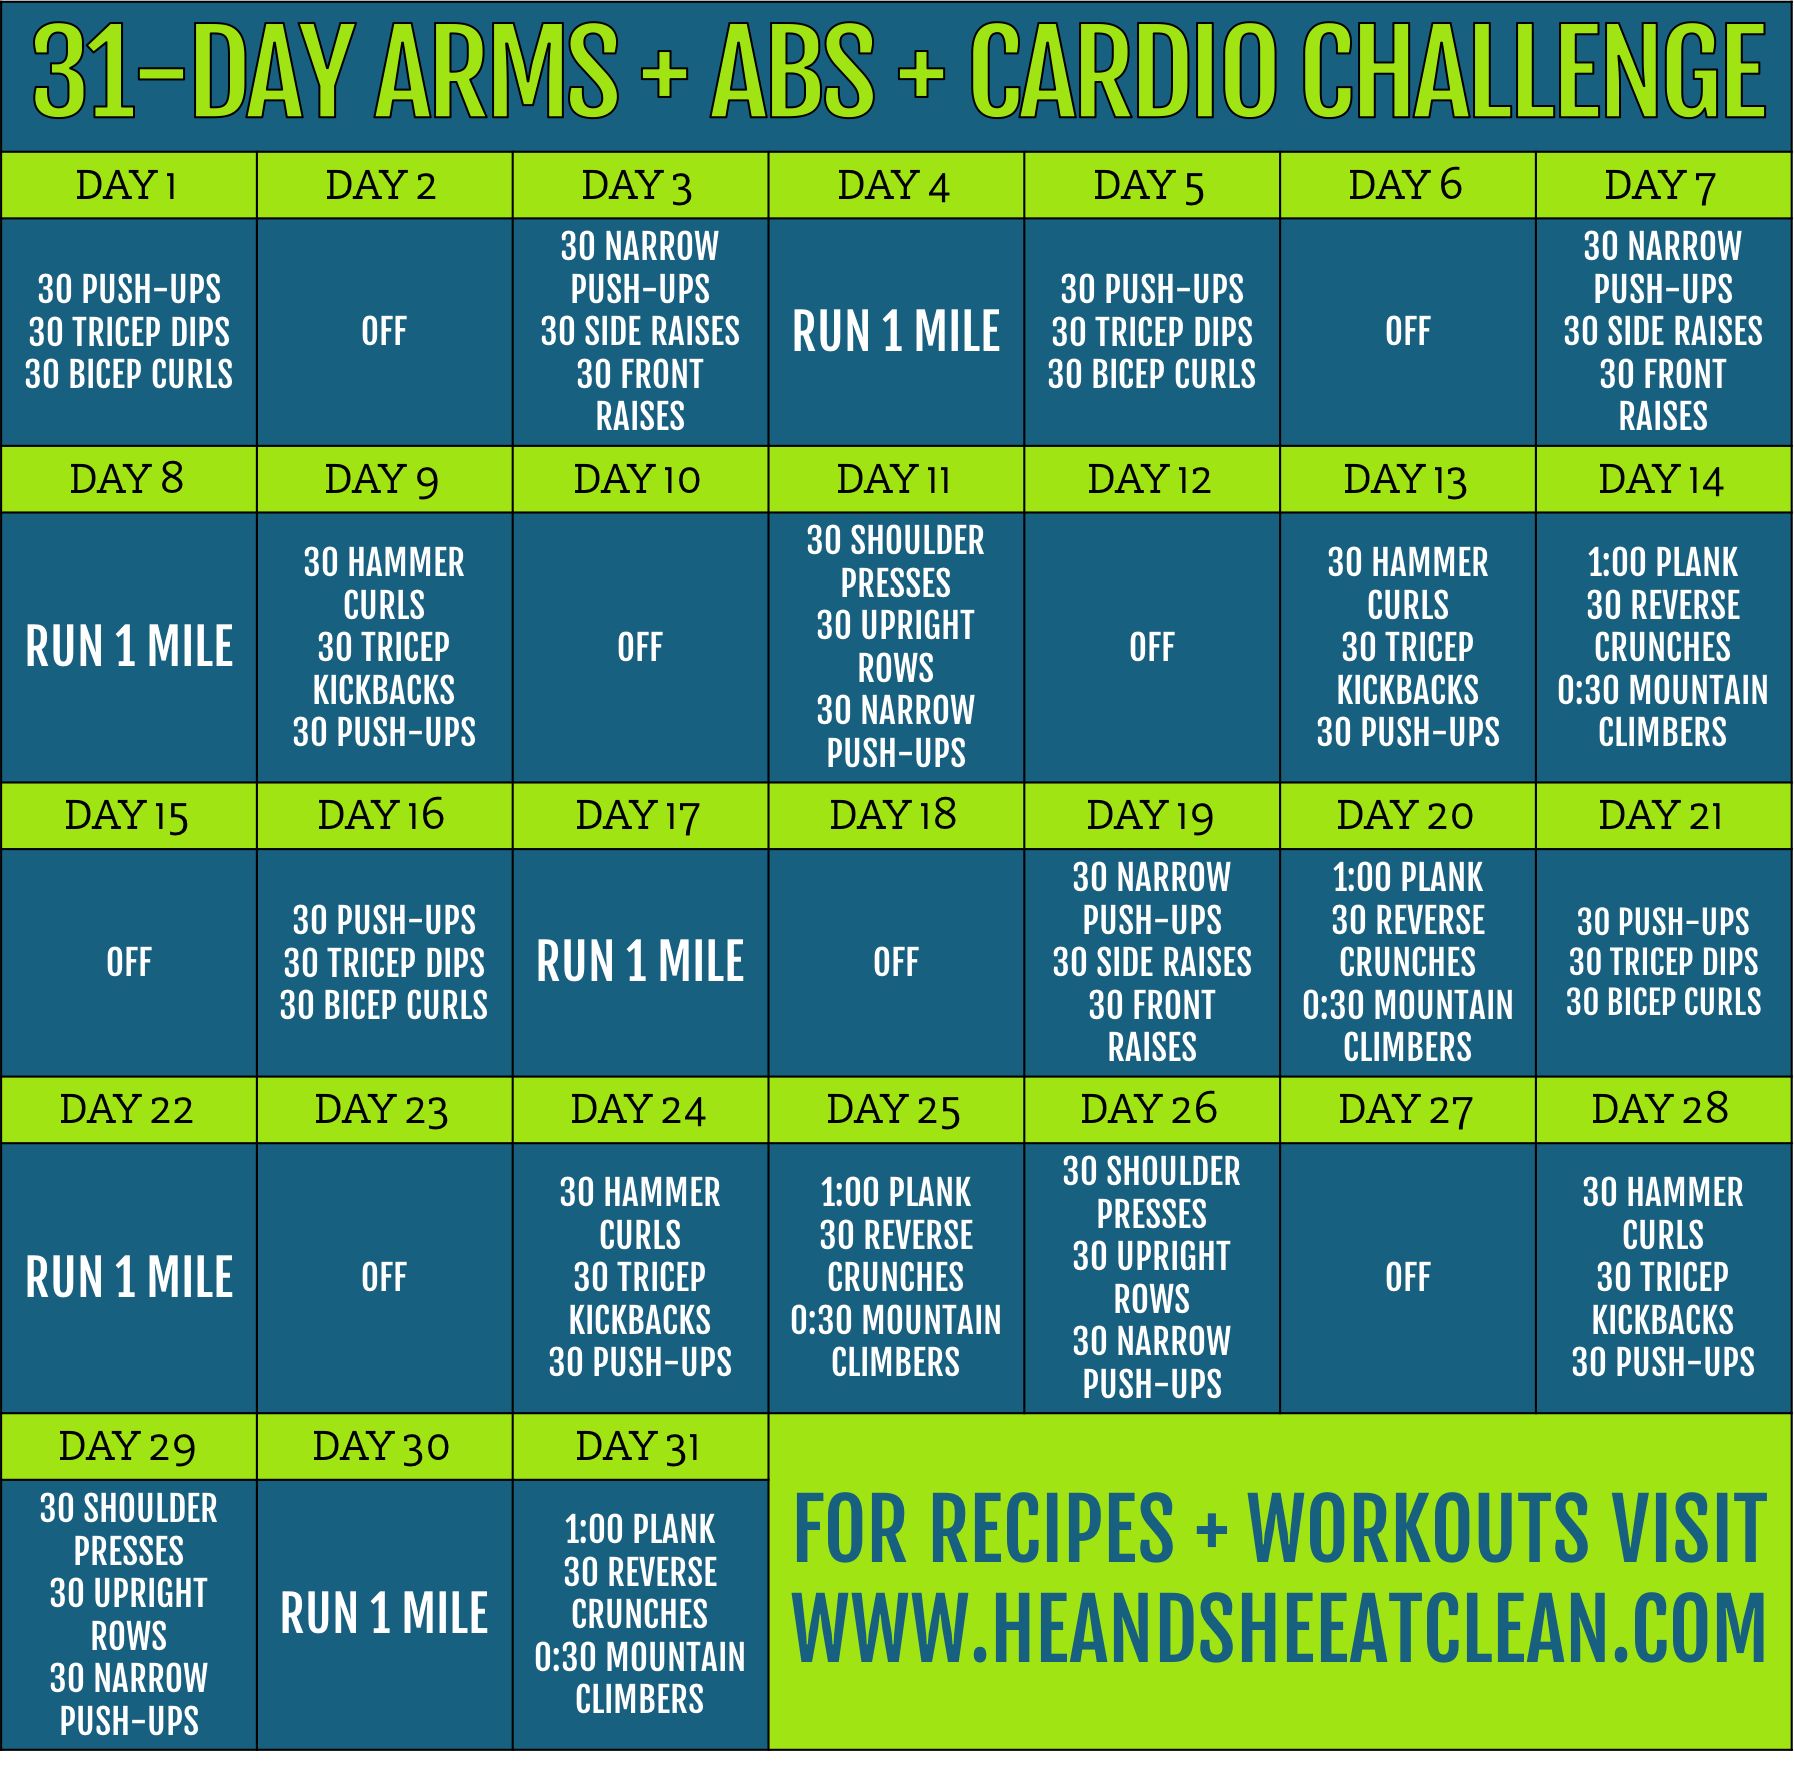 31-Day Arms, Abs & Cardio Challenge